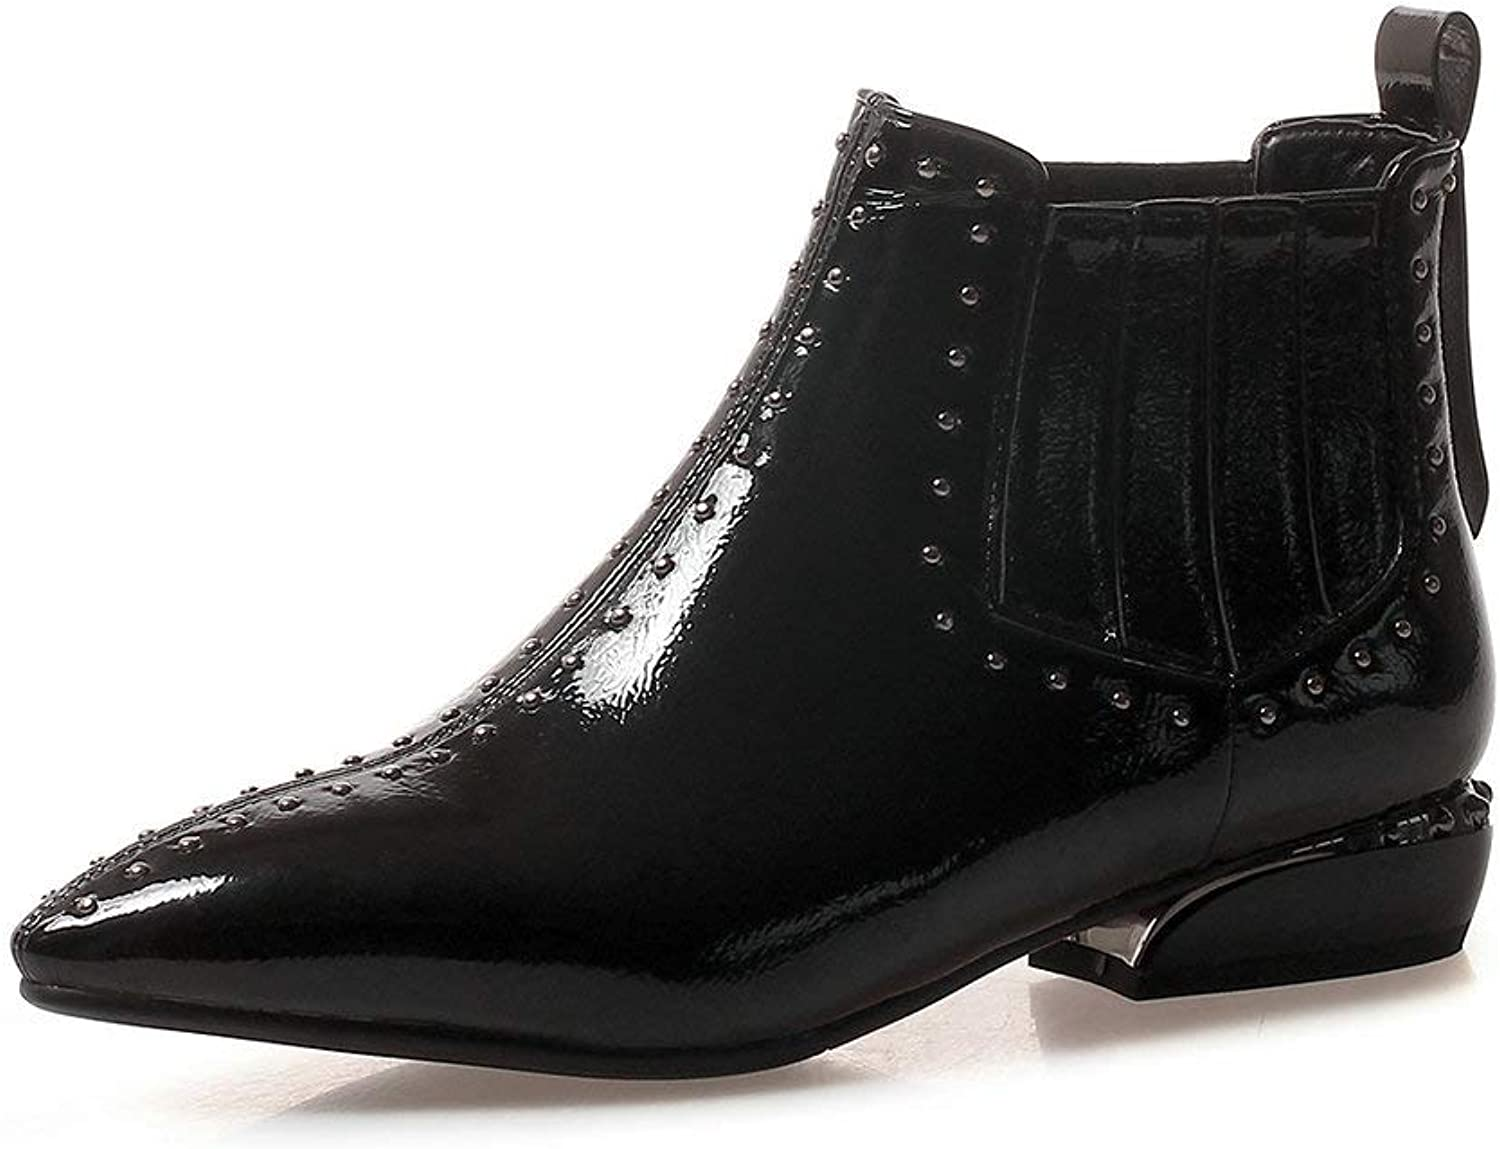 AnMengXinLing Fashion Studded Ankle Boots Women Chunky Low Heel Leather Pointed Toe Slip On Western Punk Cowgirl Chelsea Boot